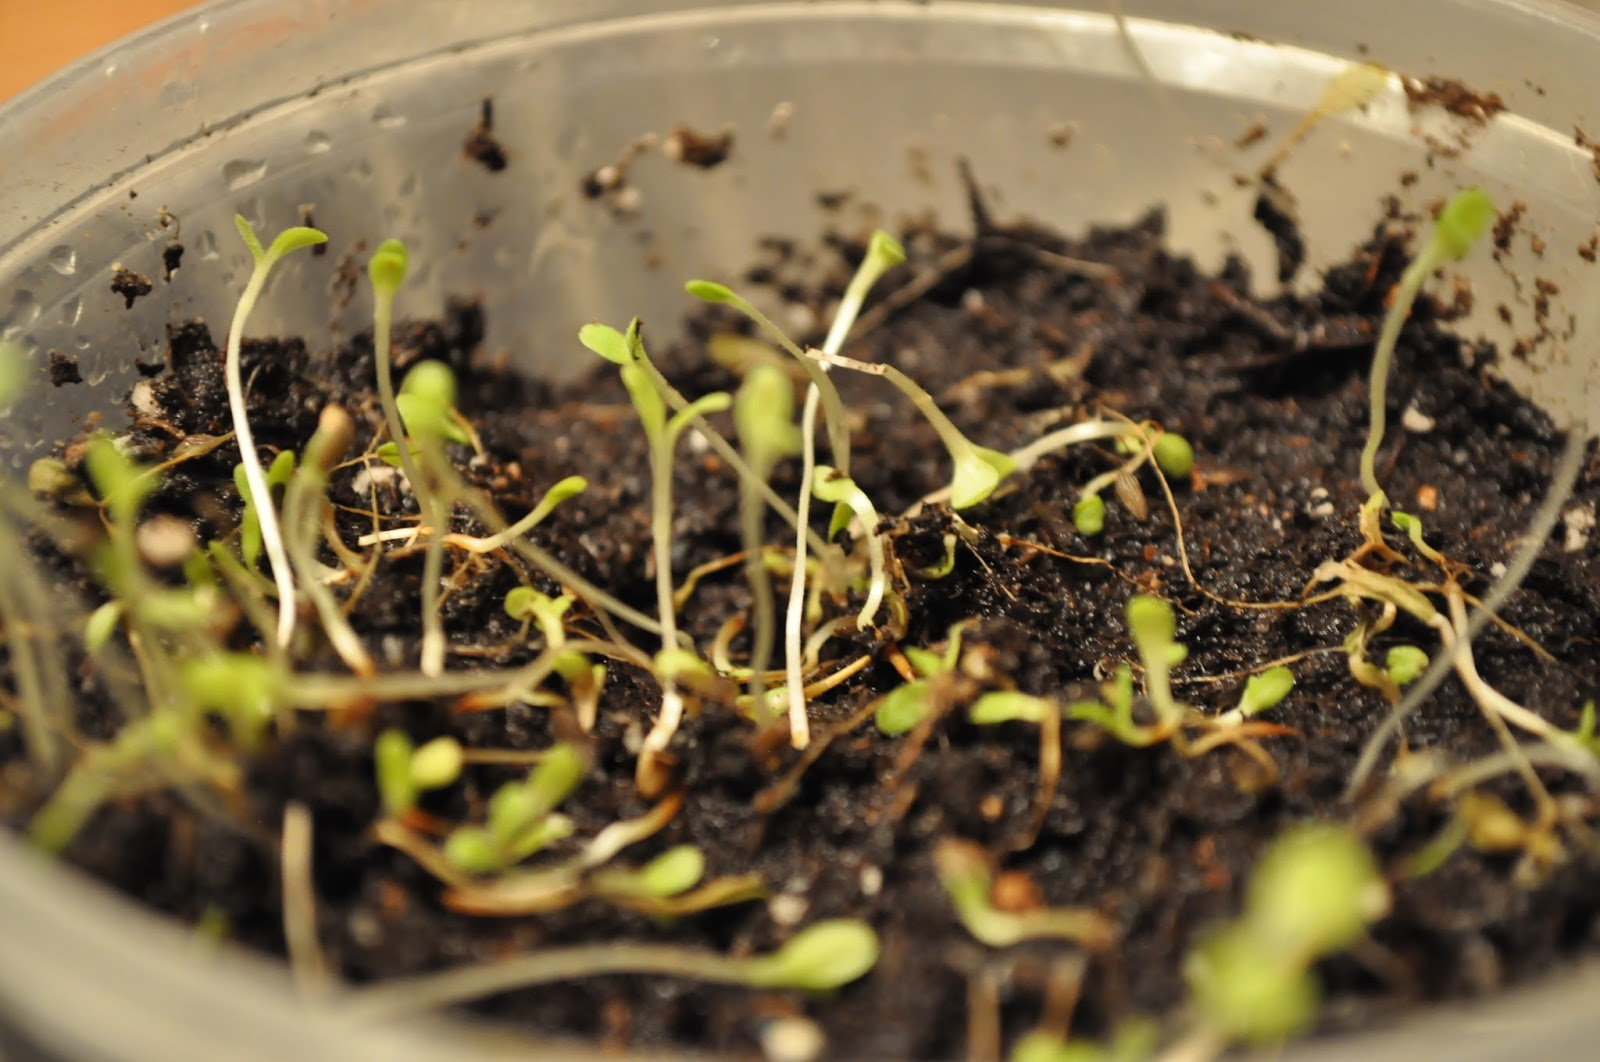 CHILKA\'S CULINARY BLOG: Plant a seed